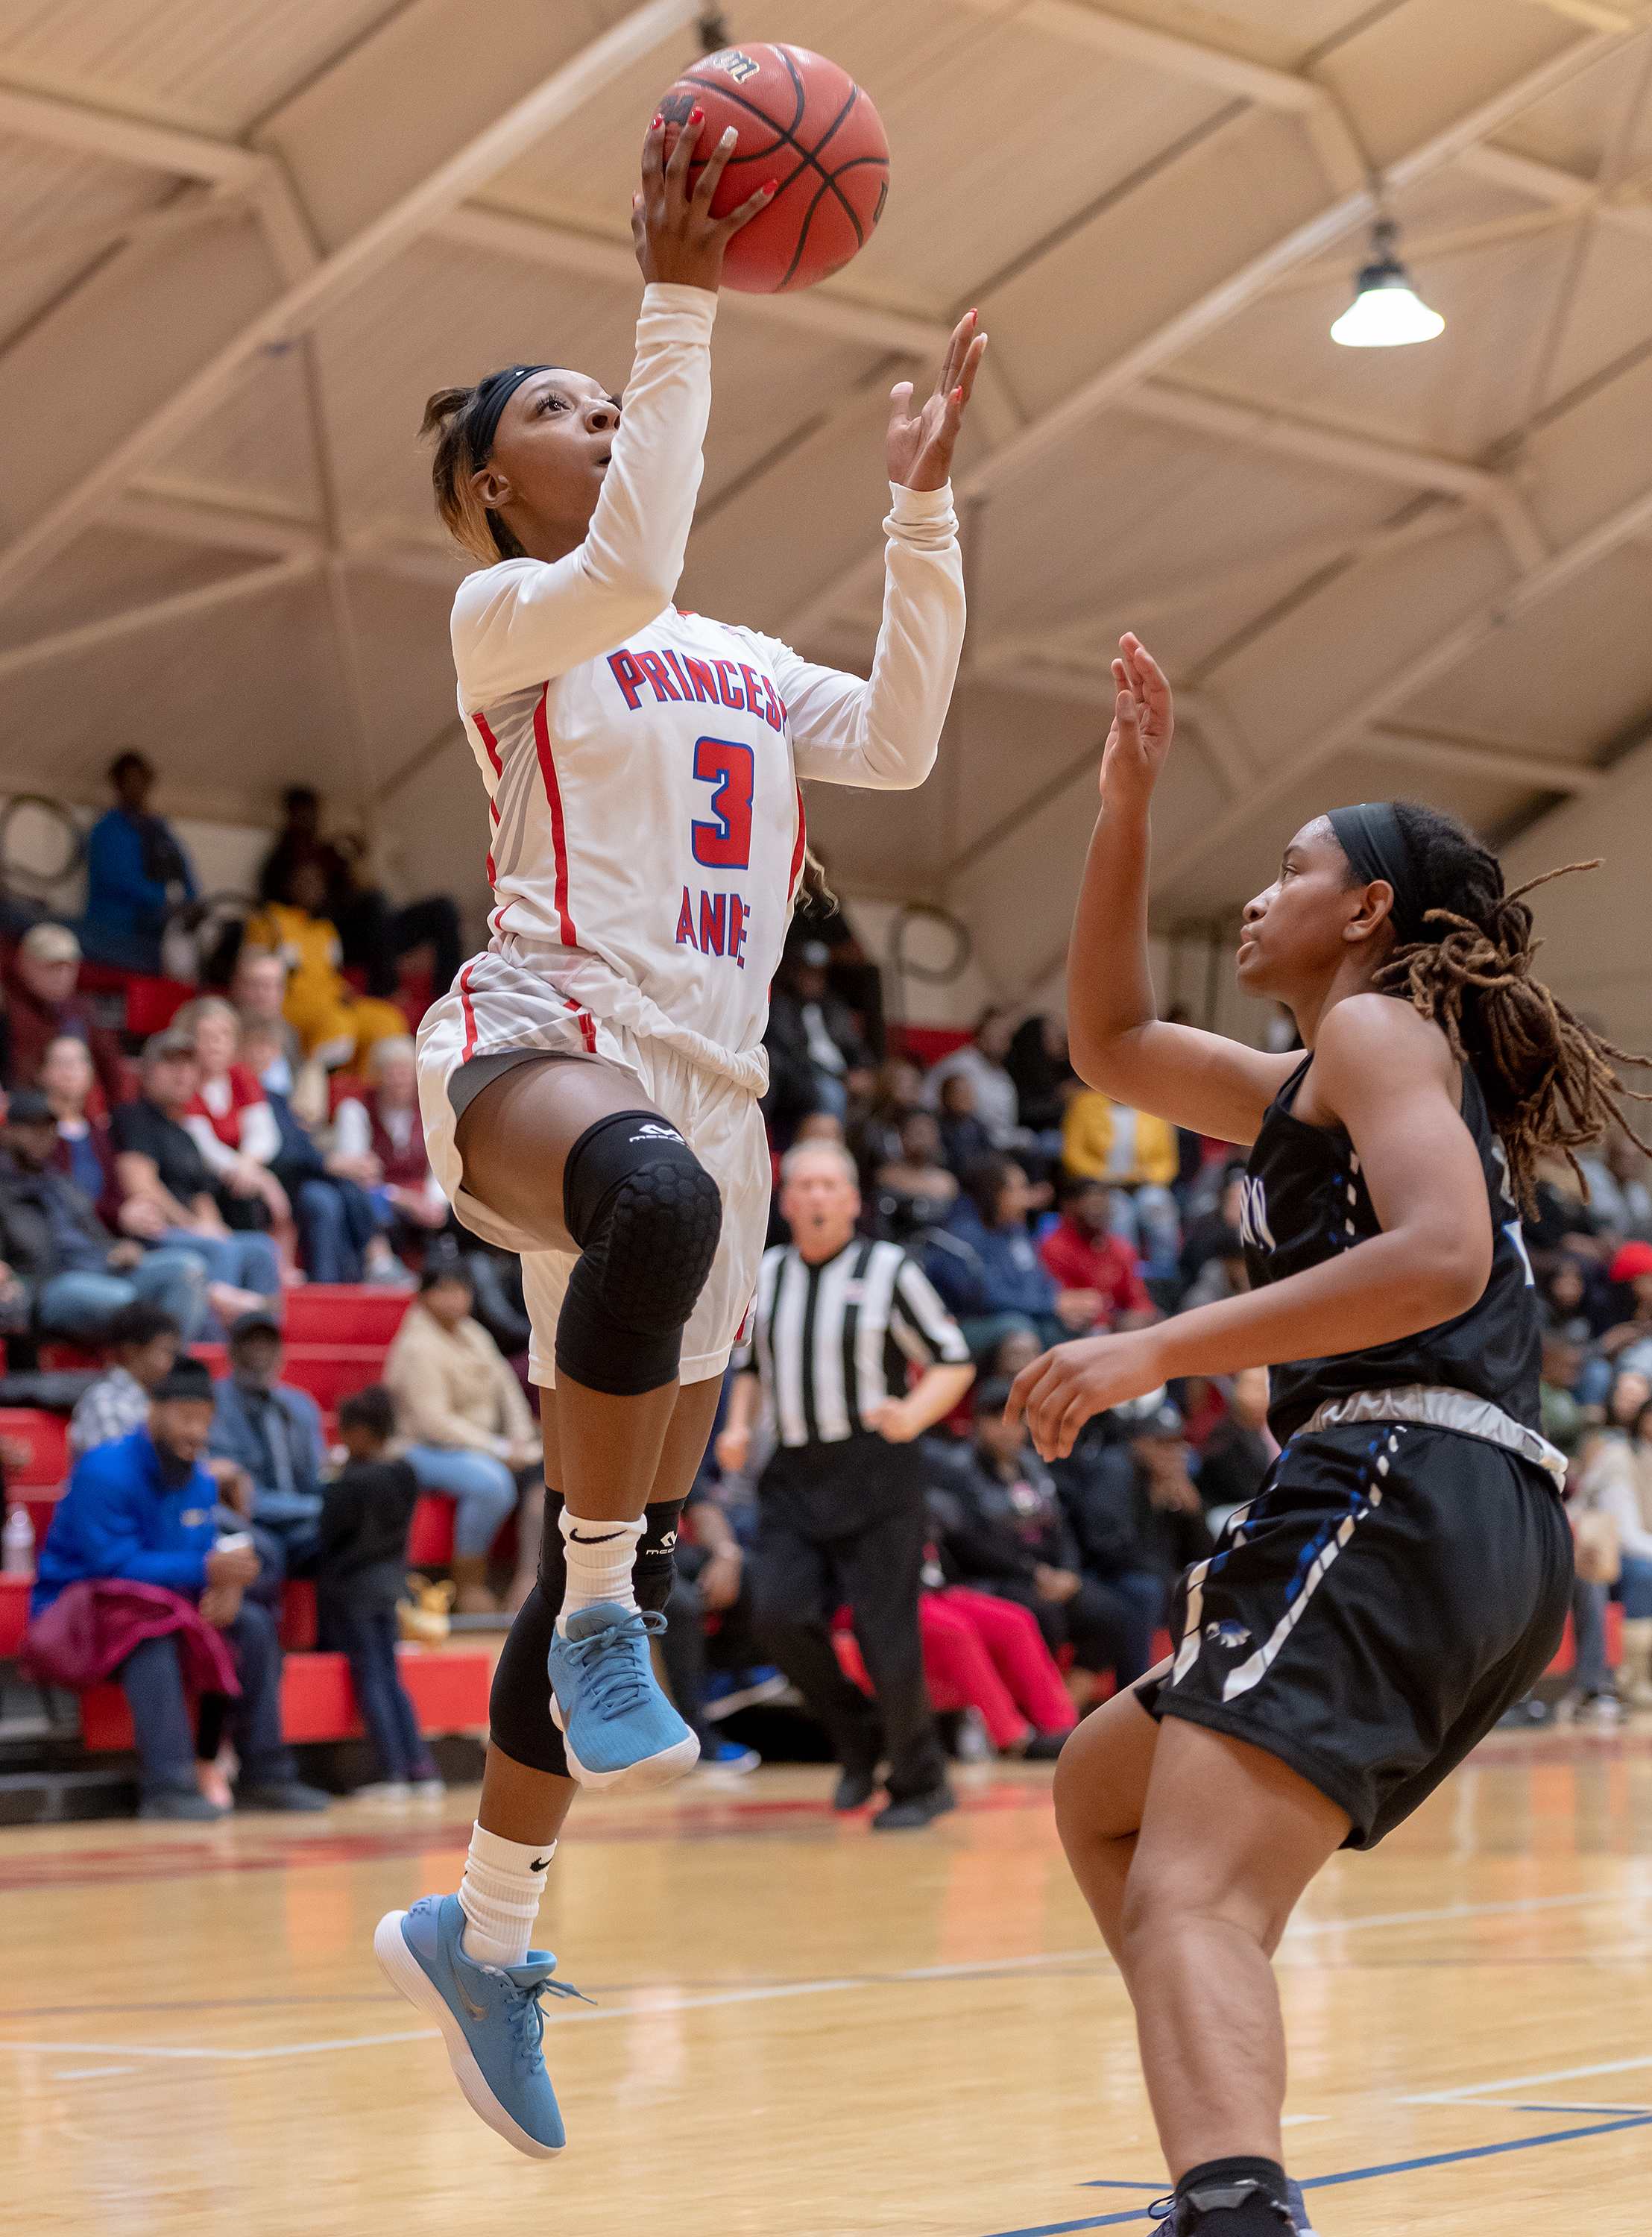 Game action from Landstown vs Princess Anne girls basketball held on Tuesday, November 27, 2018 at Princess Anne High School in Virginia Beach. Princess Anne defeated Landstown 83 to 35.